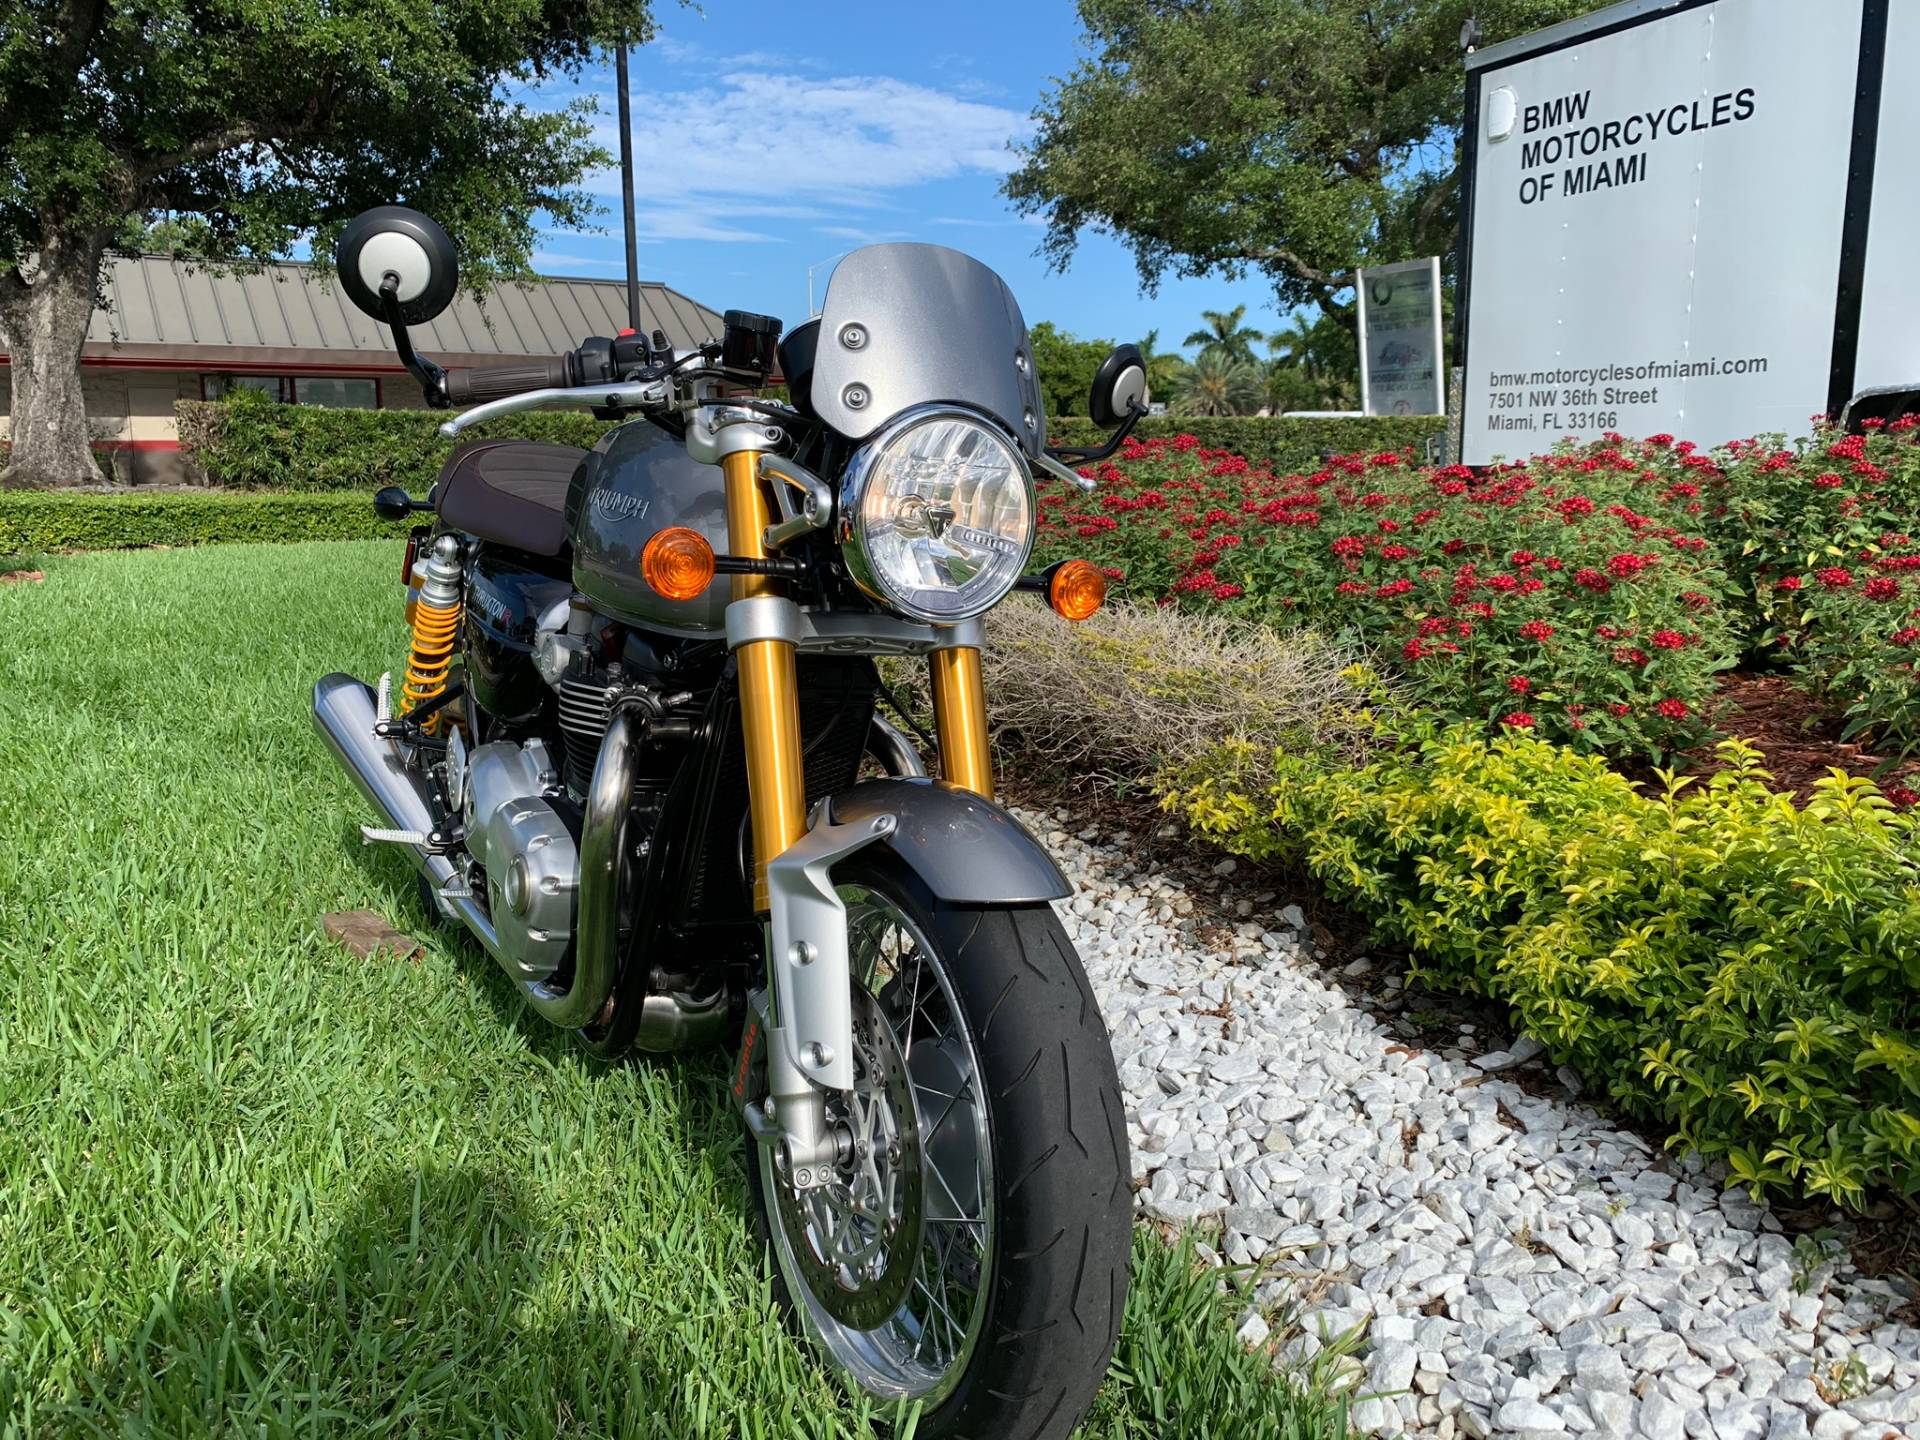 Used 2016 Triumph Thruxton 1200 R for sale,  2016 Triumph Thruxton 1200R for sale,  Triumph Thruxton1200R,  Used ThruxtonR, Cafe. Cruiser, BMW Motorcycles of Miami, Motorcycles of Miami, Motorcycles Miami, New Motorcycles, Used Motorcycles, pre-owned. #BMWMotorcyclesOfMiami #MotorcyclesOfMiami #Moto - Photo 26